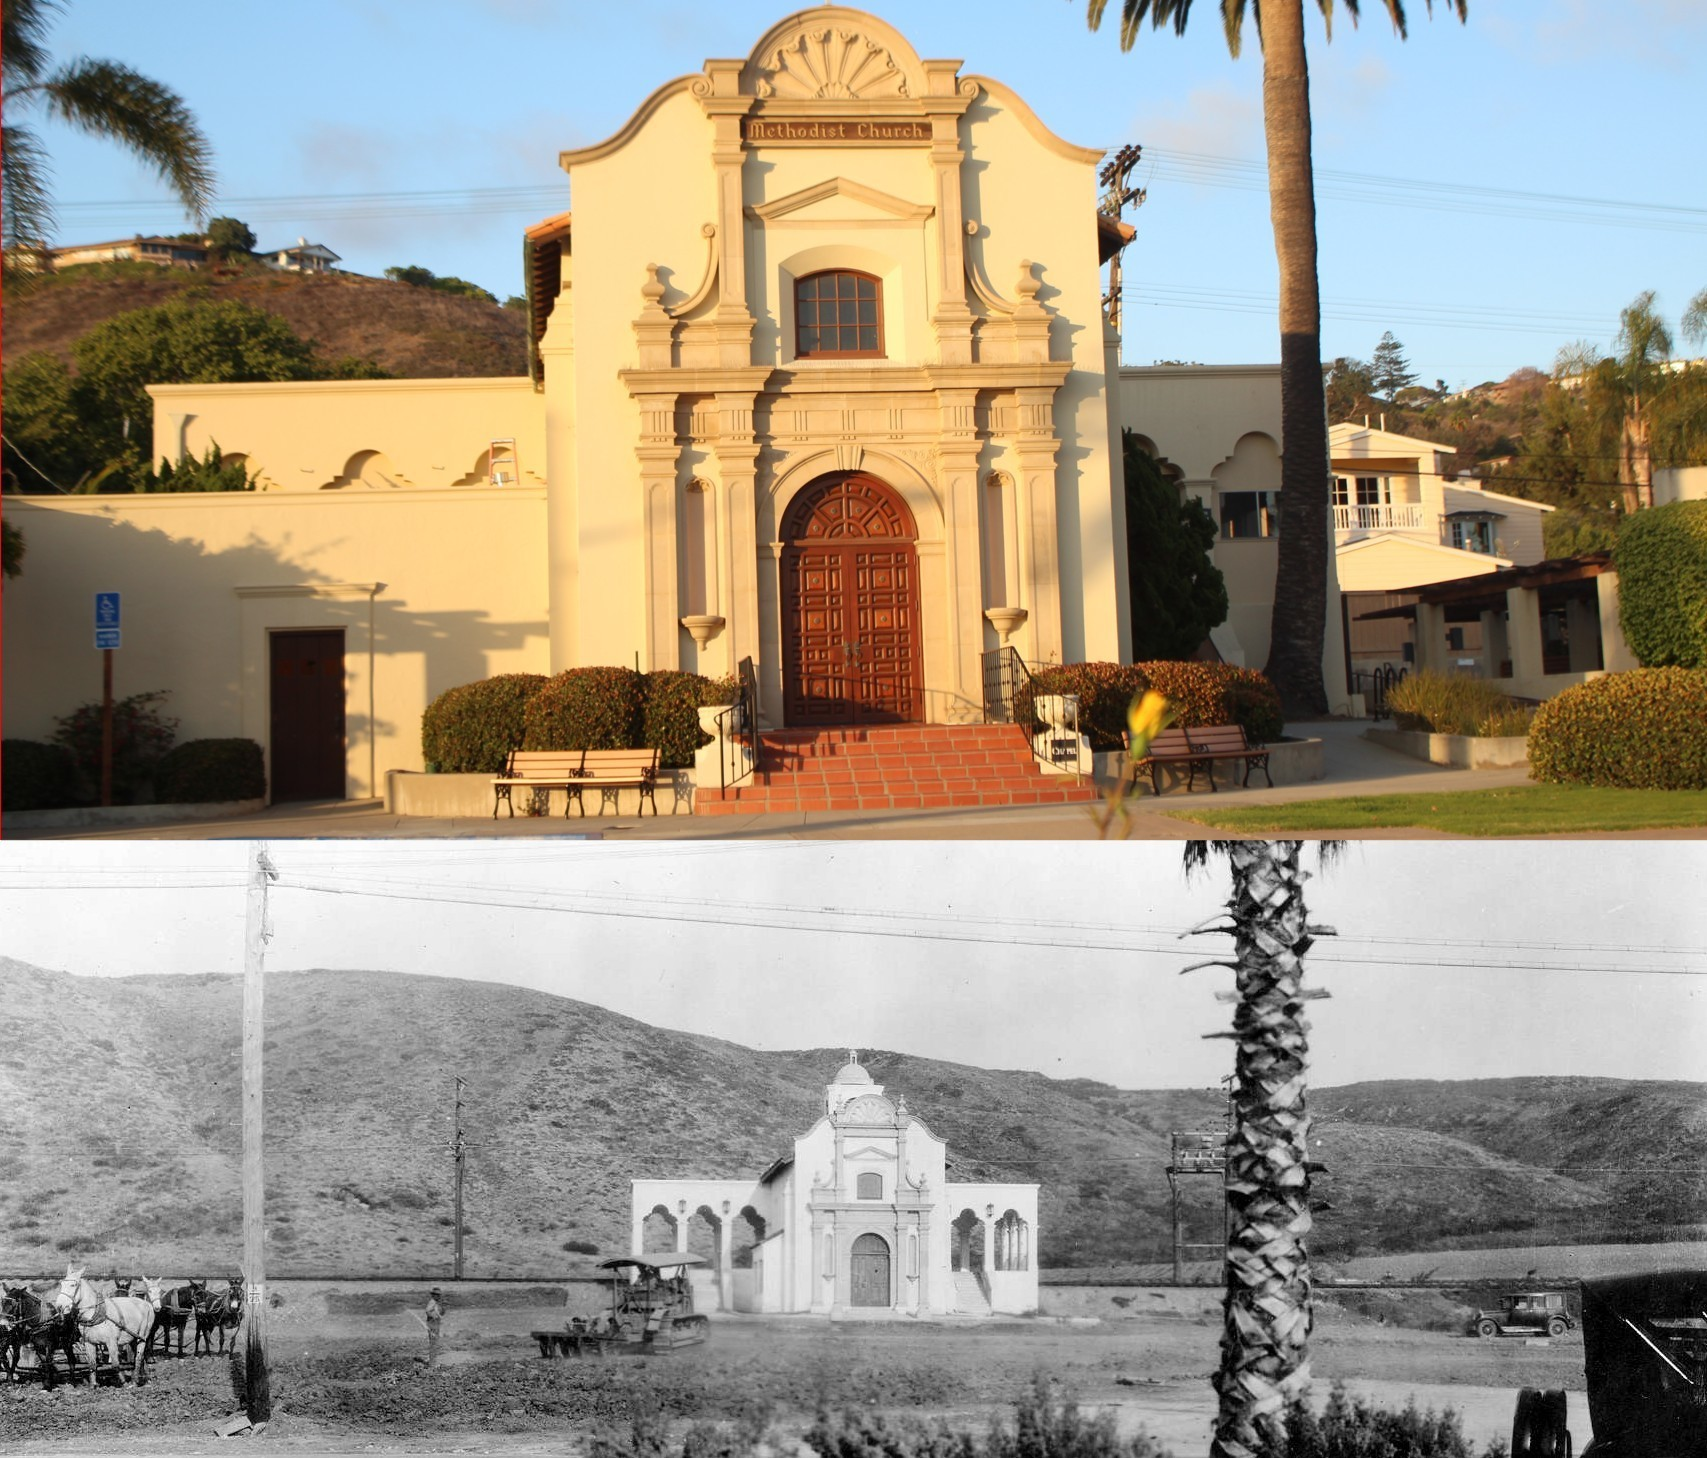 The La Jolla Methodist Church as it appears today (above) and below, not long after the building was constructed as the San Carlos Station for La Jolla's streetcar line.